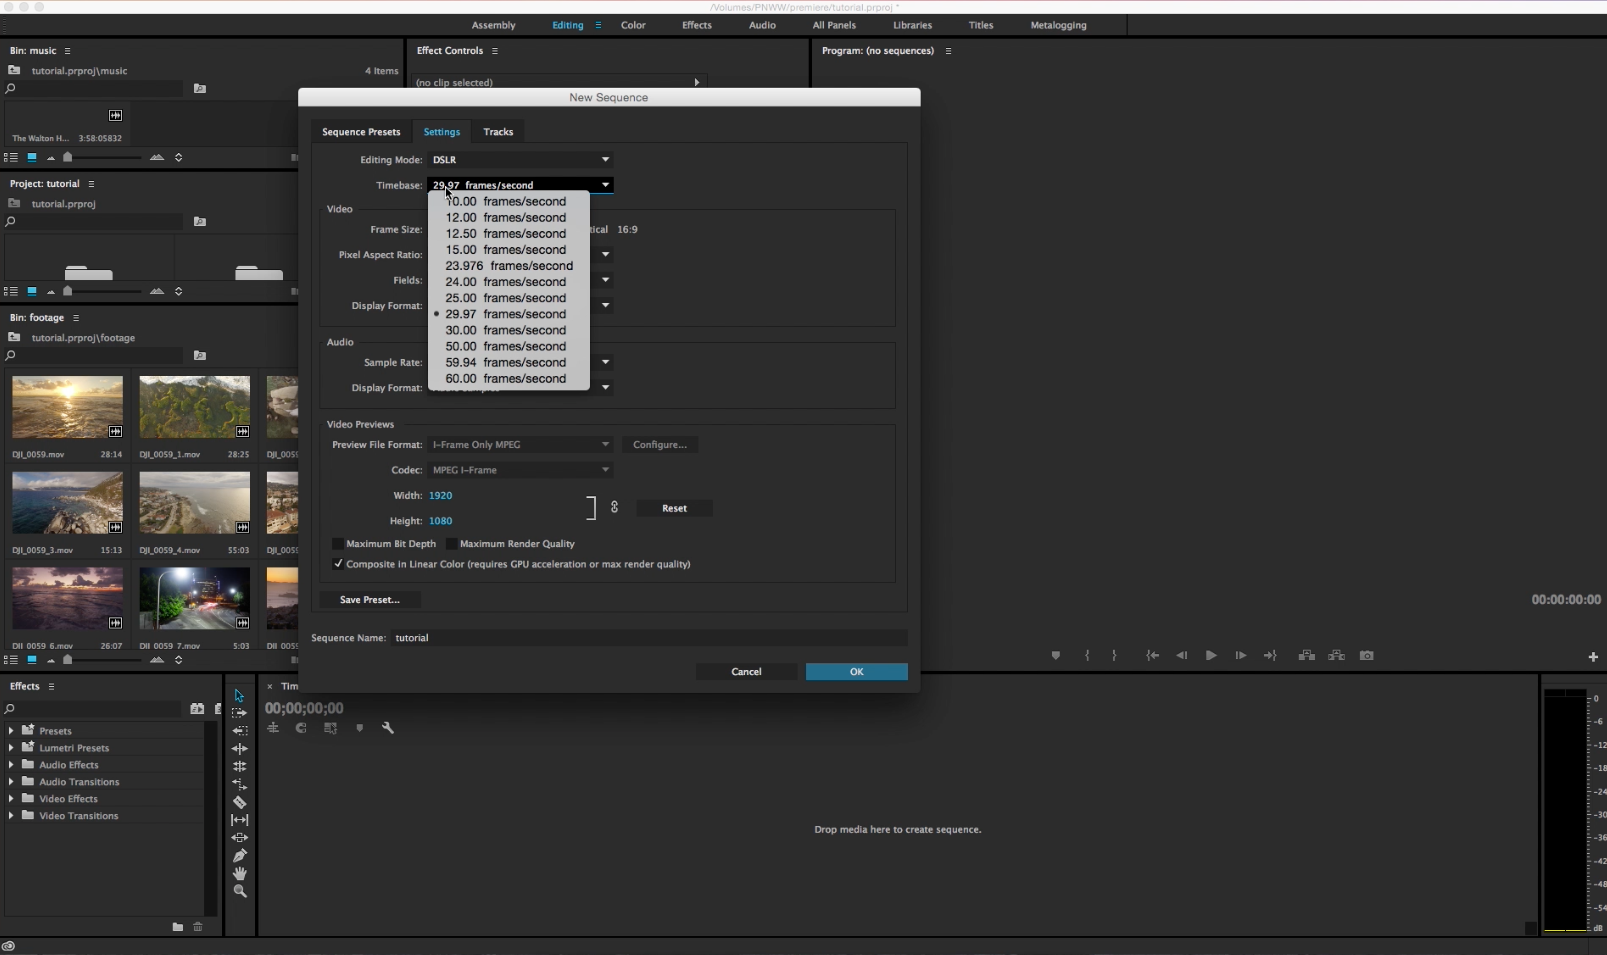 Adobe premiere video editing tutorial basics michael shainblum adobe premiere video editing tutorial basics baditri Choice Image